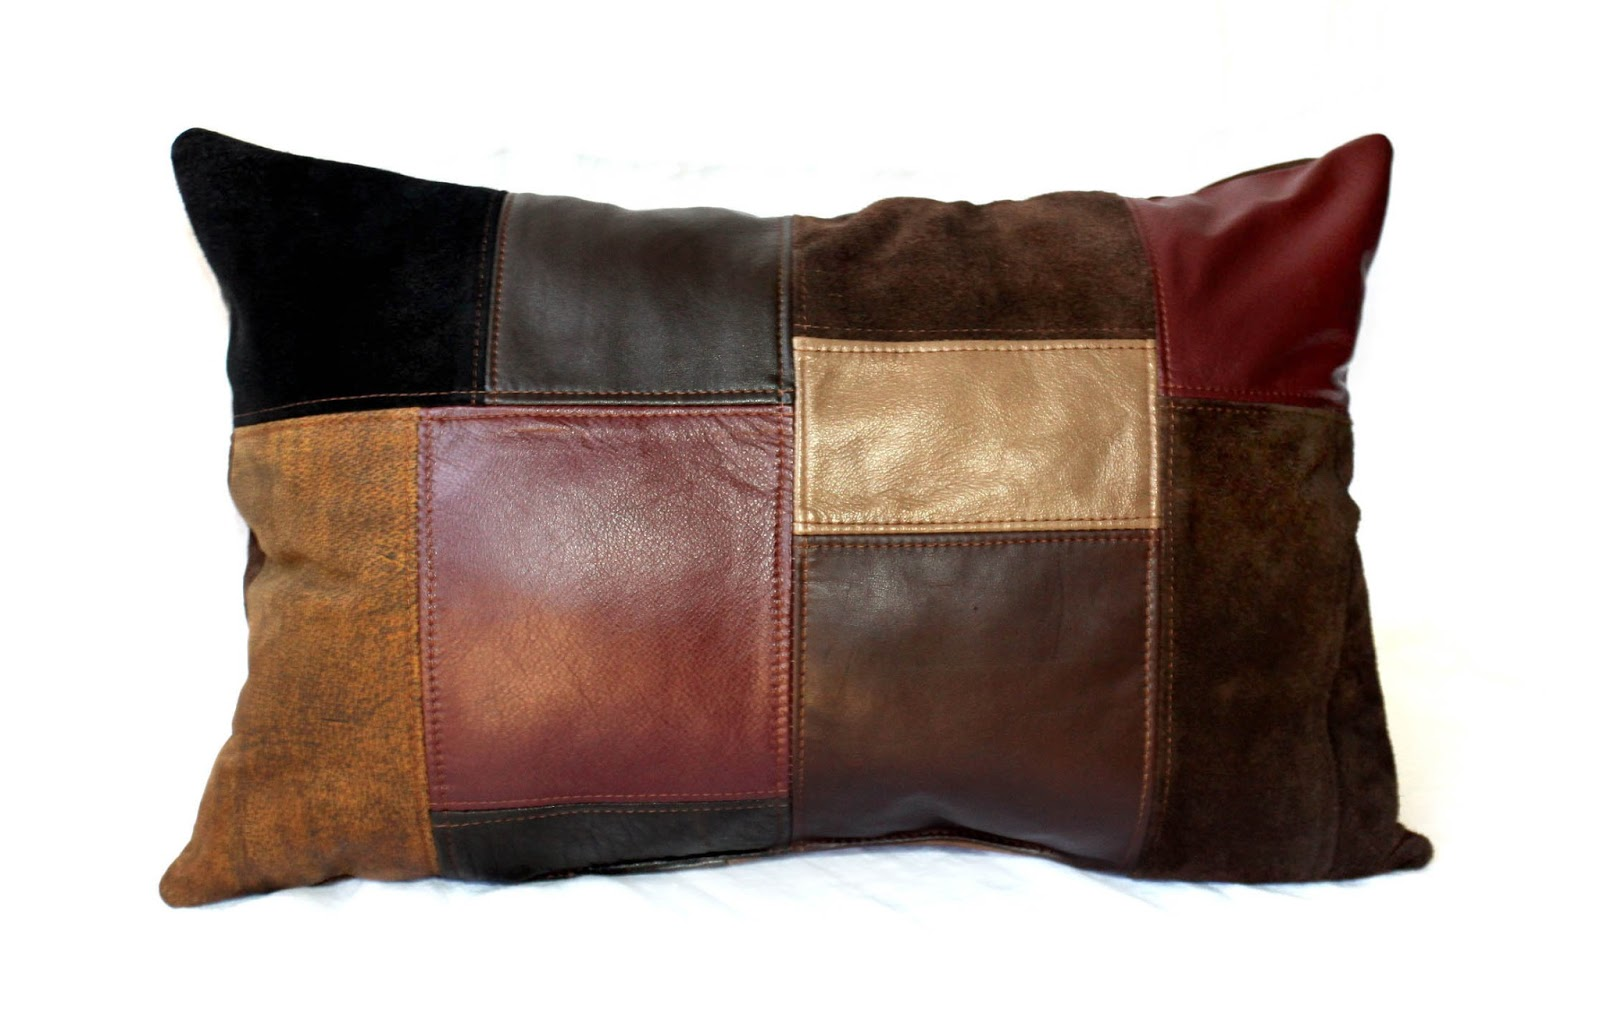 Uptown Redesigns Upcycled Leather Patchwork Pillows